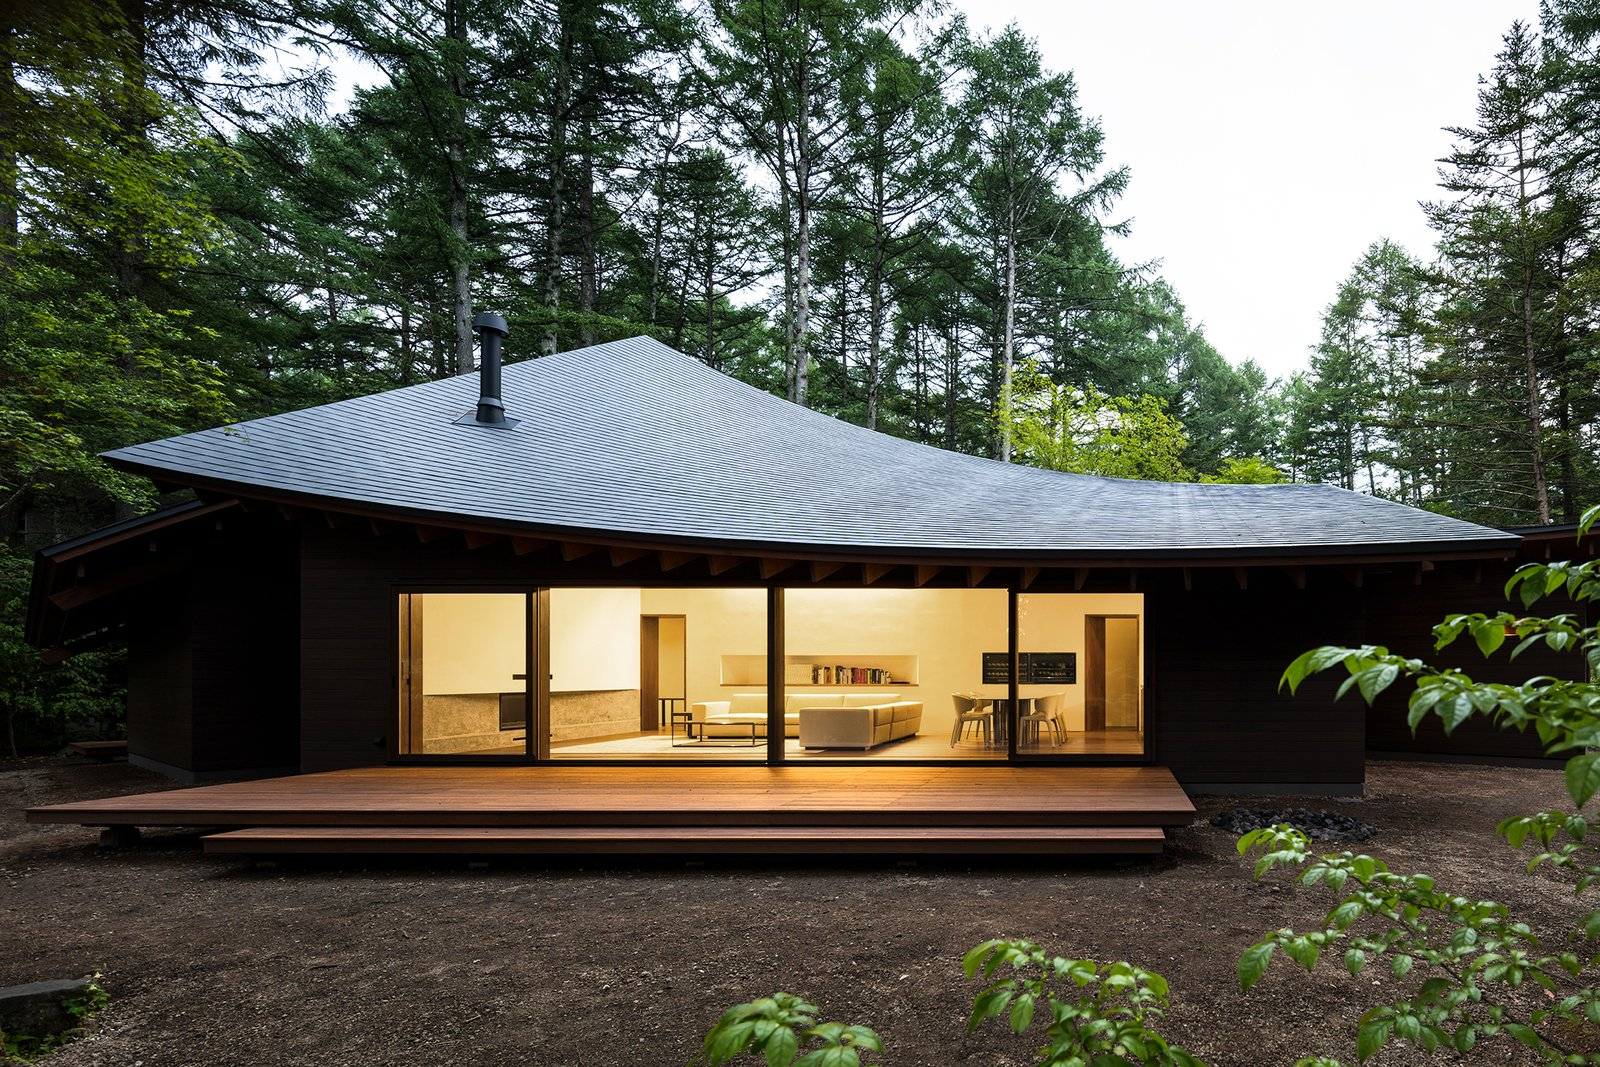 Exterior, Curved RoofLine, Wood Siding Material, House Building Type, and Shingles Roof Material Located in Karuizawa, a popular summer resort town in Japan's Nagano Prefecture, Four Leaves is a weekend getaway designed to accommodate the homeowner and their guests in a lush, sylvan setting. Designed by Kentaro Ishida Architects Studio (KIAS), the highlight of the stunning, 2,400-square-foot house is its sloping, angular roof sections that are delicately assembled to resemble fallen leaves.  Photo 2 of 21 in Dwell's Top 10 Home Tours of 2019 from This Serene Japanese Retreat's Overlapping Roofs Look Like Fallen Leaves